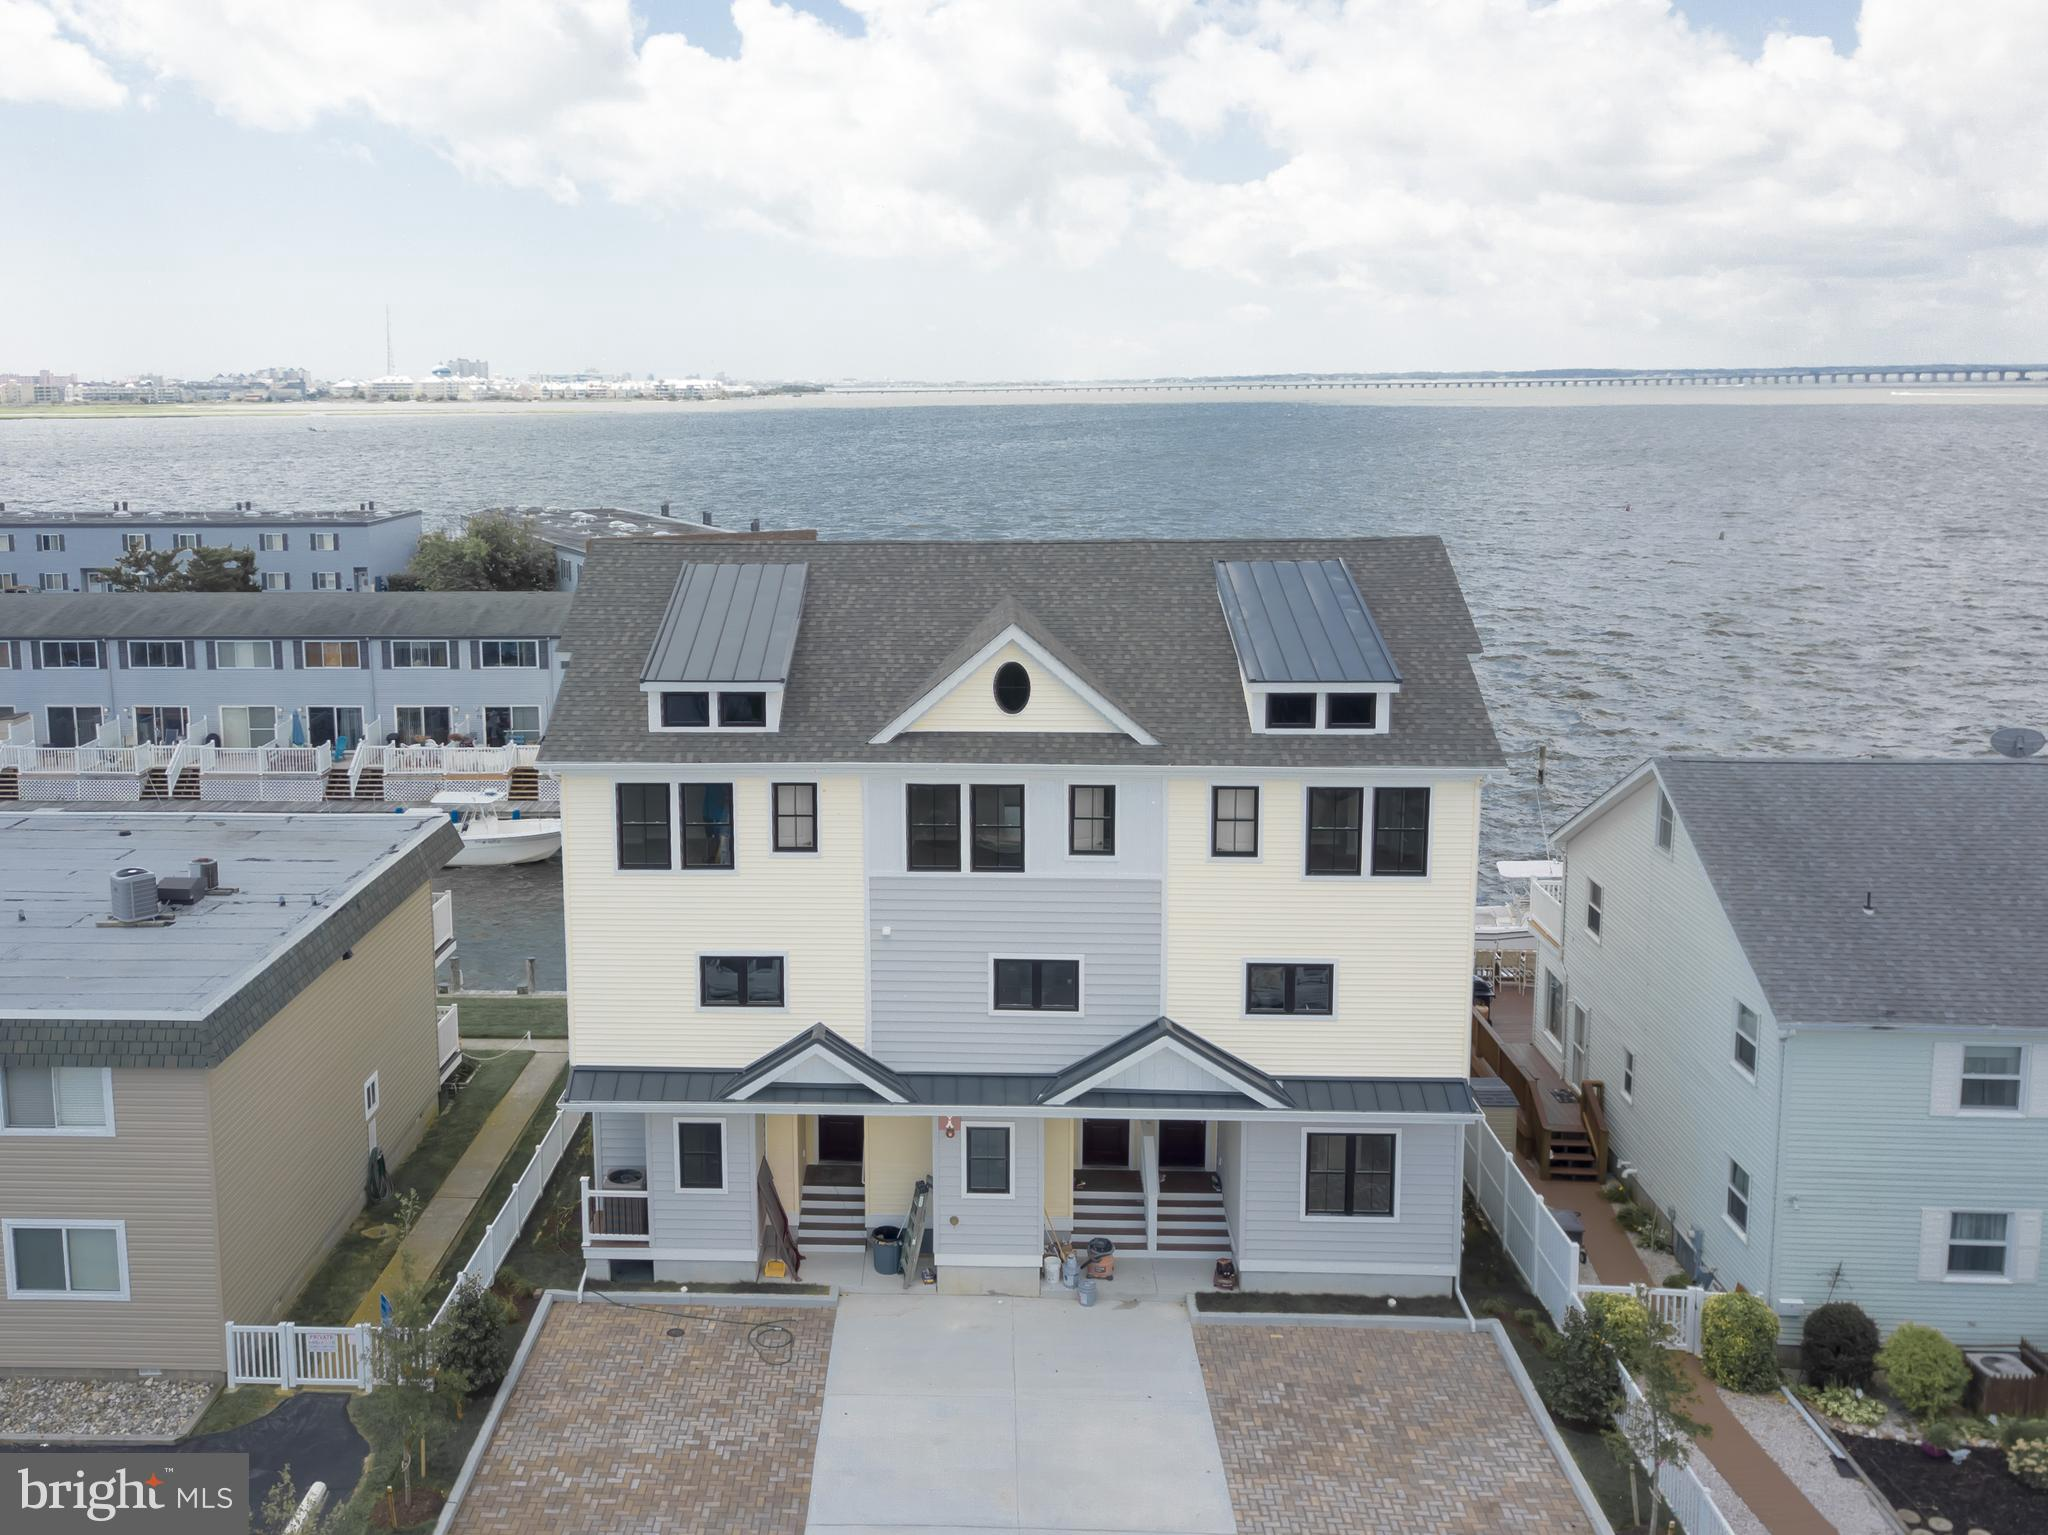 This is a must-see custom designed, new construction 3 b/r 3 1/2 bath beauty! First floor offers a bayfront bedroom, full bath and laundry/utility/storage room. Second floor has wood laminate floors throughout the open floor plan, bayfront living area, kitchen w/ SS appliances, granite, large breakfast bar & powder room. Third floor boasts two master suites, bayfront b/r has sweeping panoramic views of OC, bay & Rt 90 bridge. Each unit has two assigned  parking spaces with two bonus spaces to be shared among 3 owners. Seller is under contract & permits are in process to replace bulkhead at sellers expense as well as to install pilings for elevator lifts for both  A & B units.  Buyers will be responsible for purchase of the actual lift but i